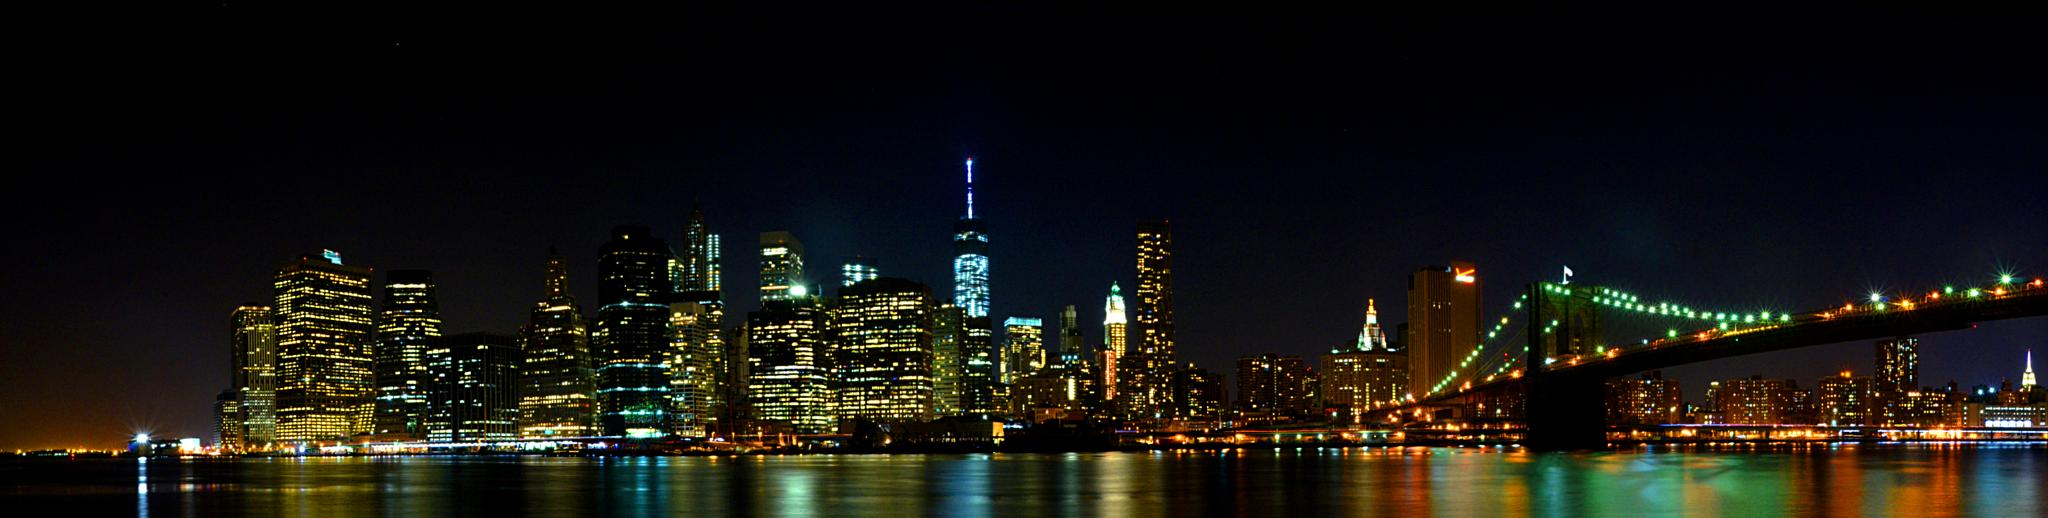 NYC by night by Cortez